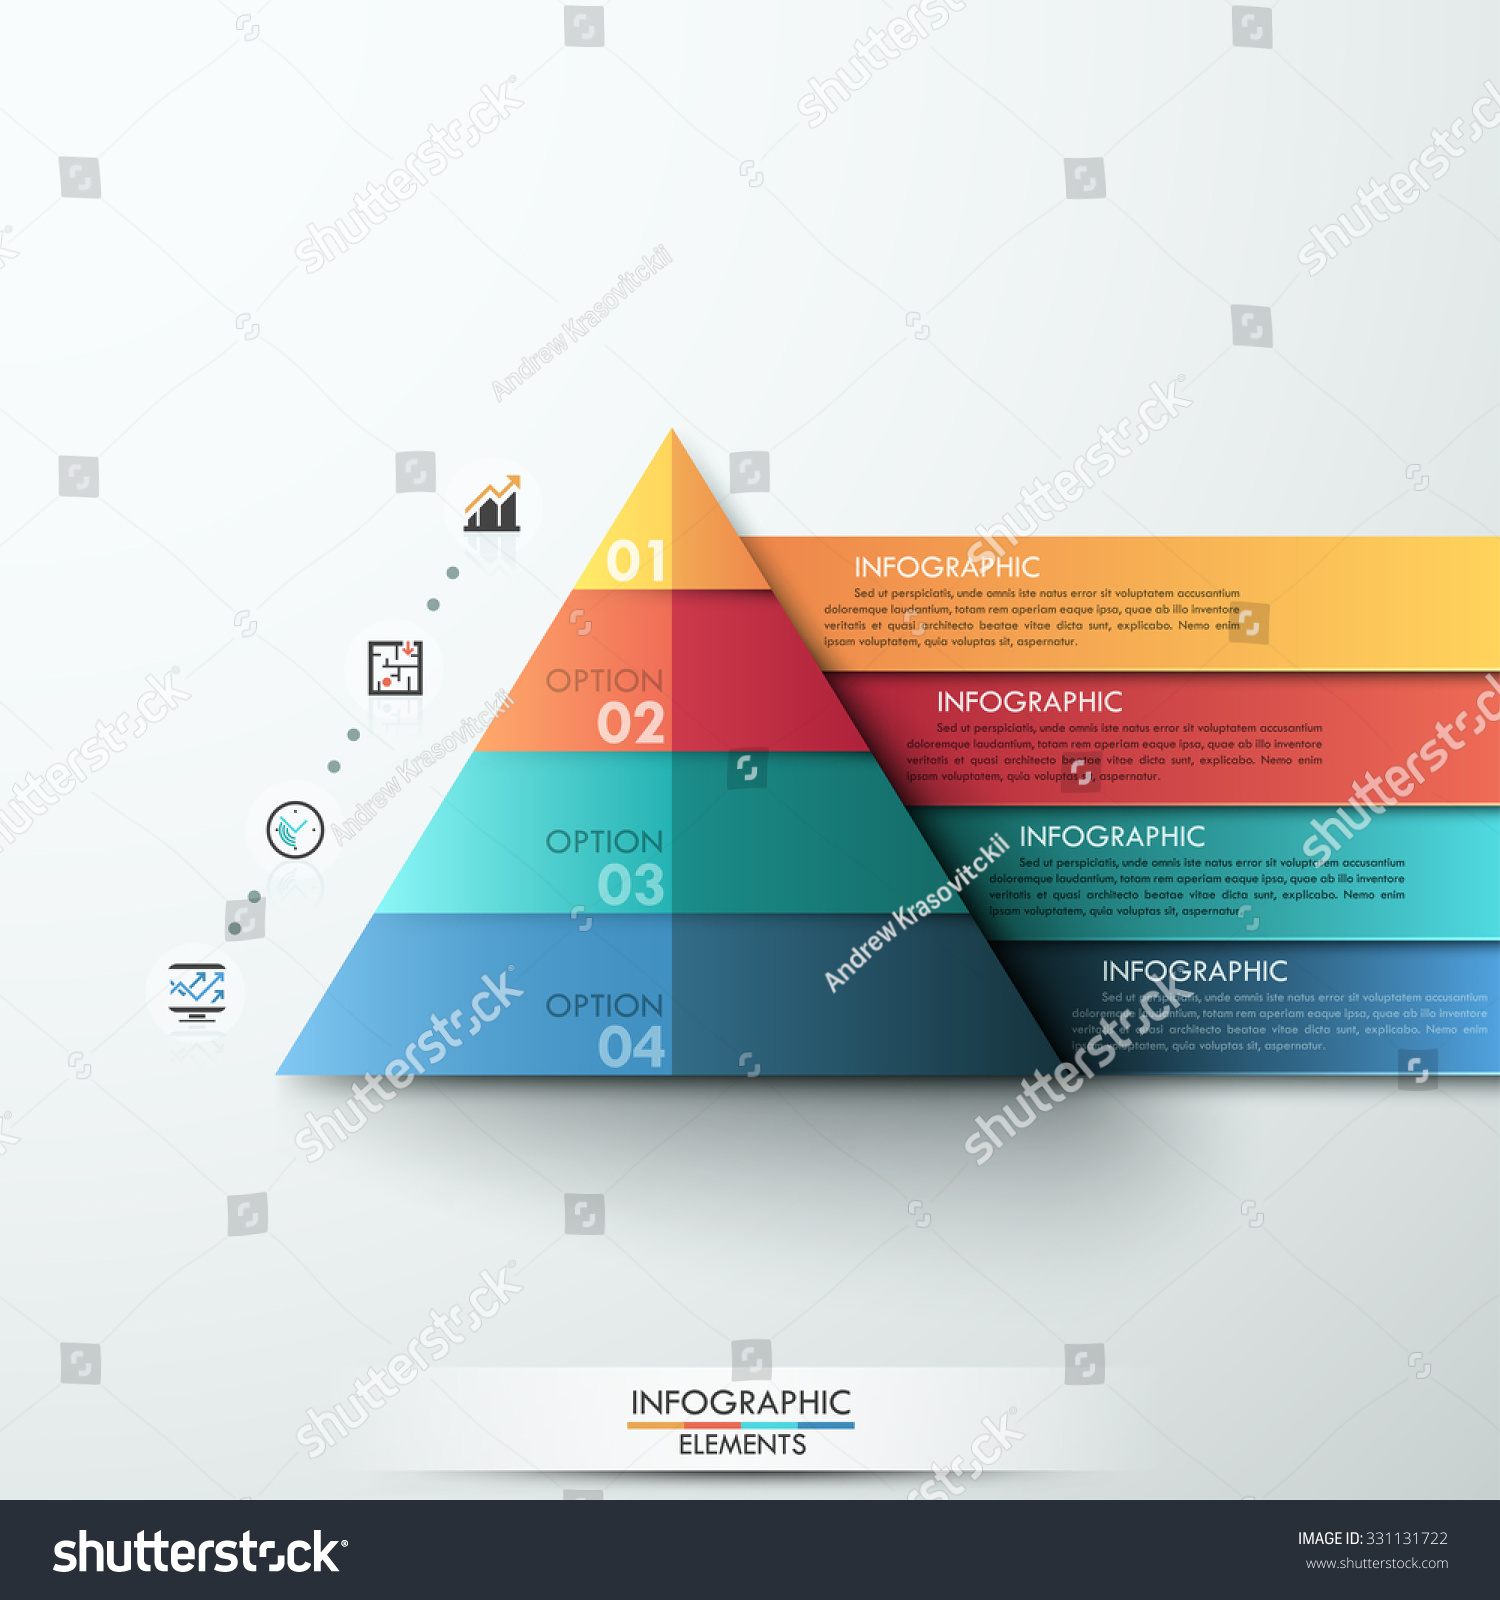 Pyramiding stock options